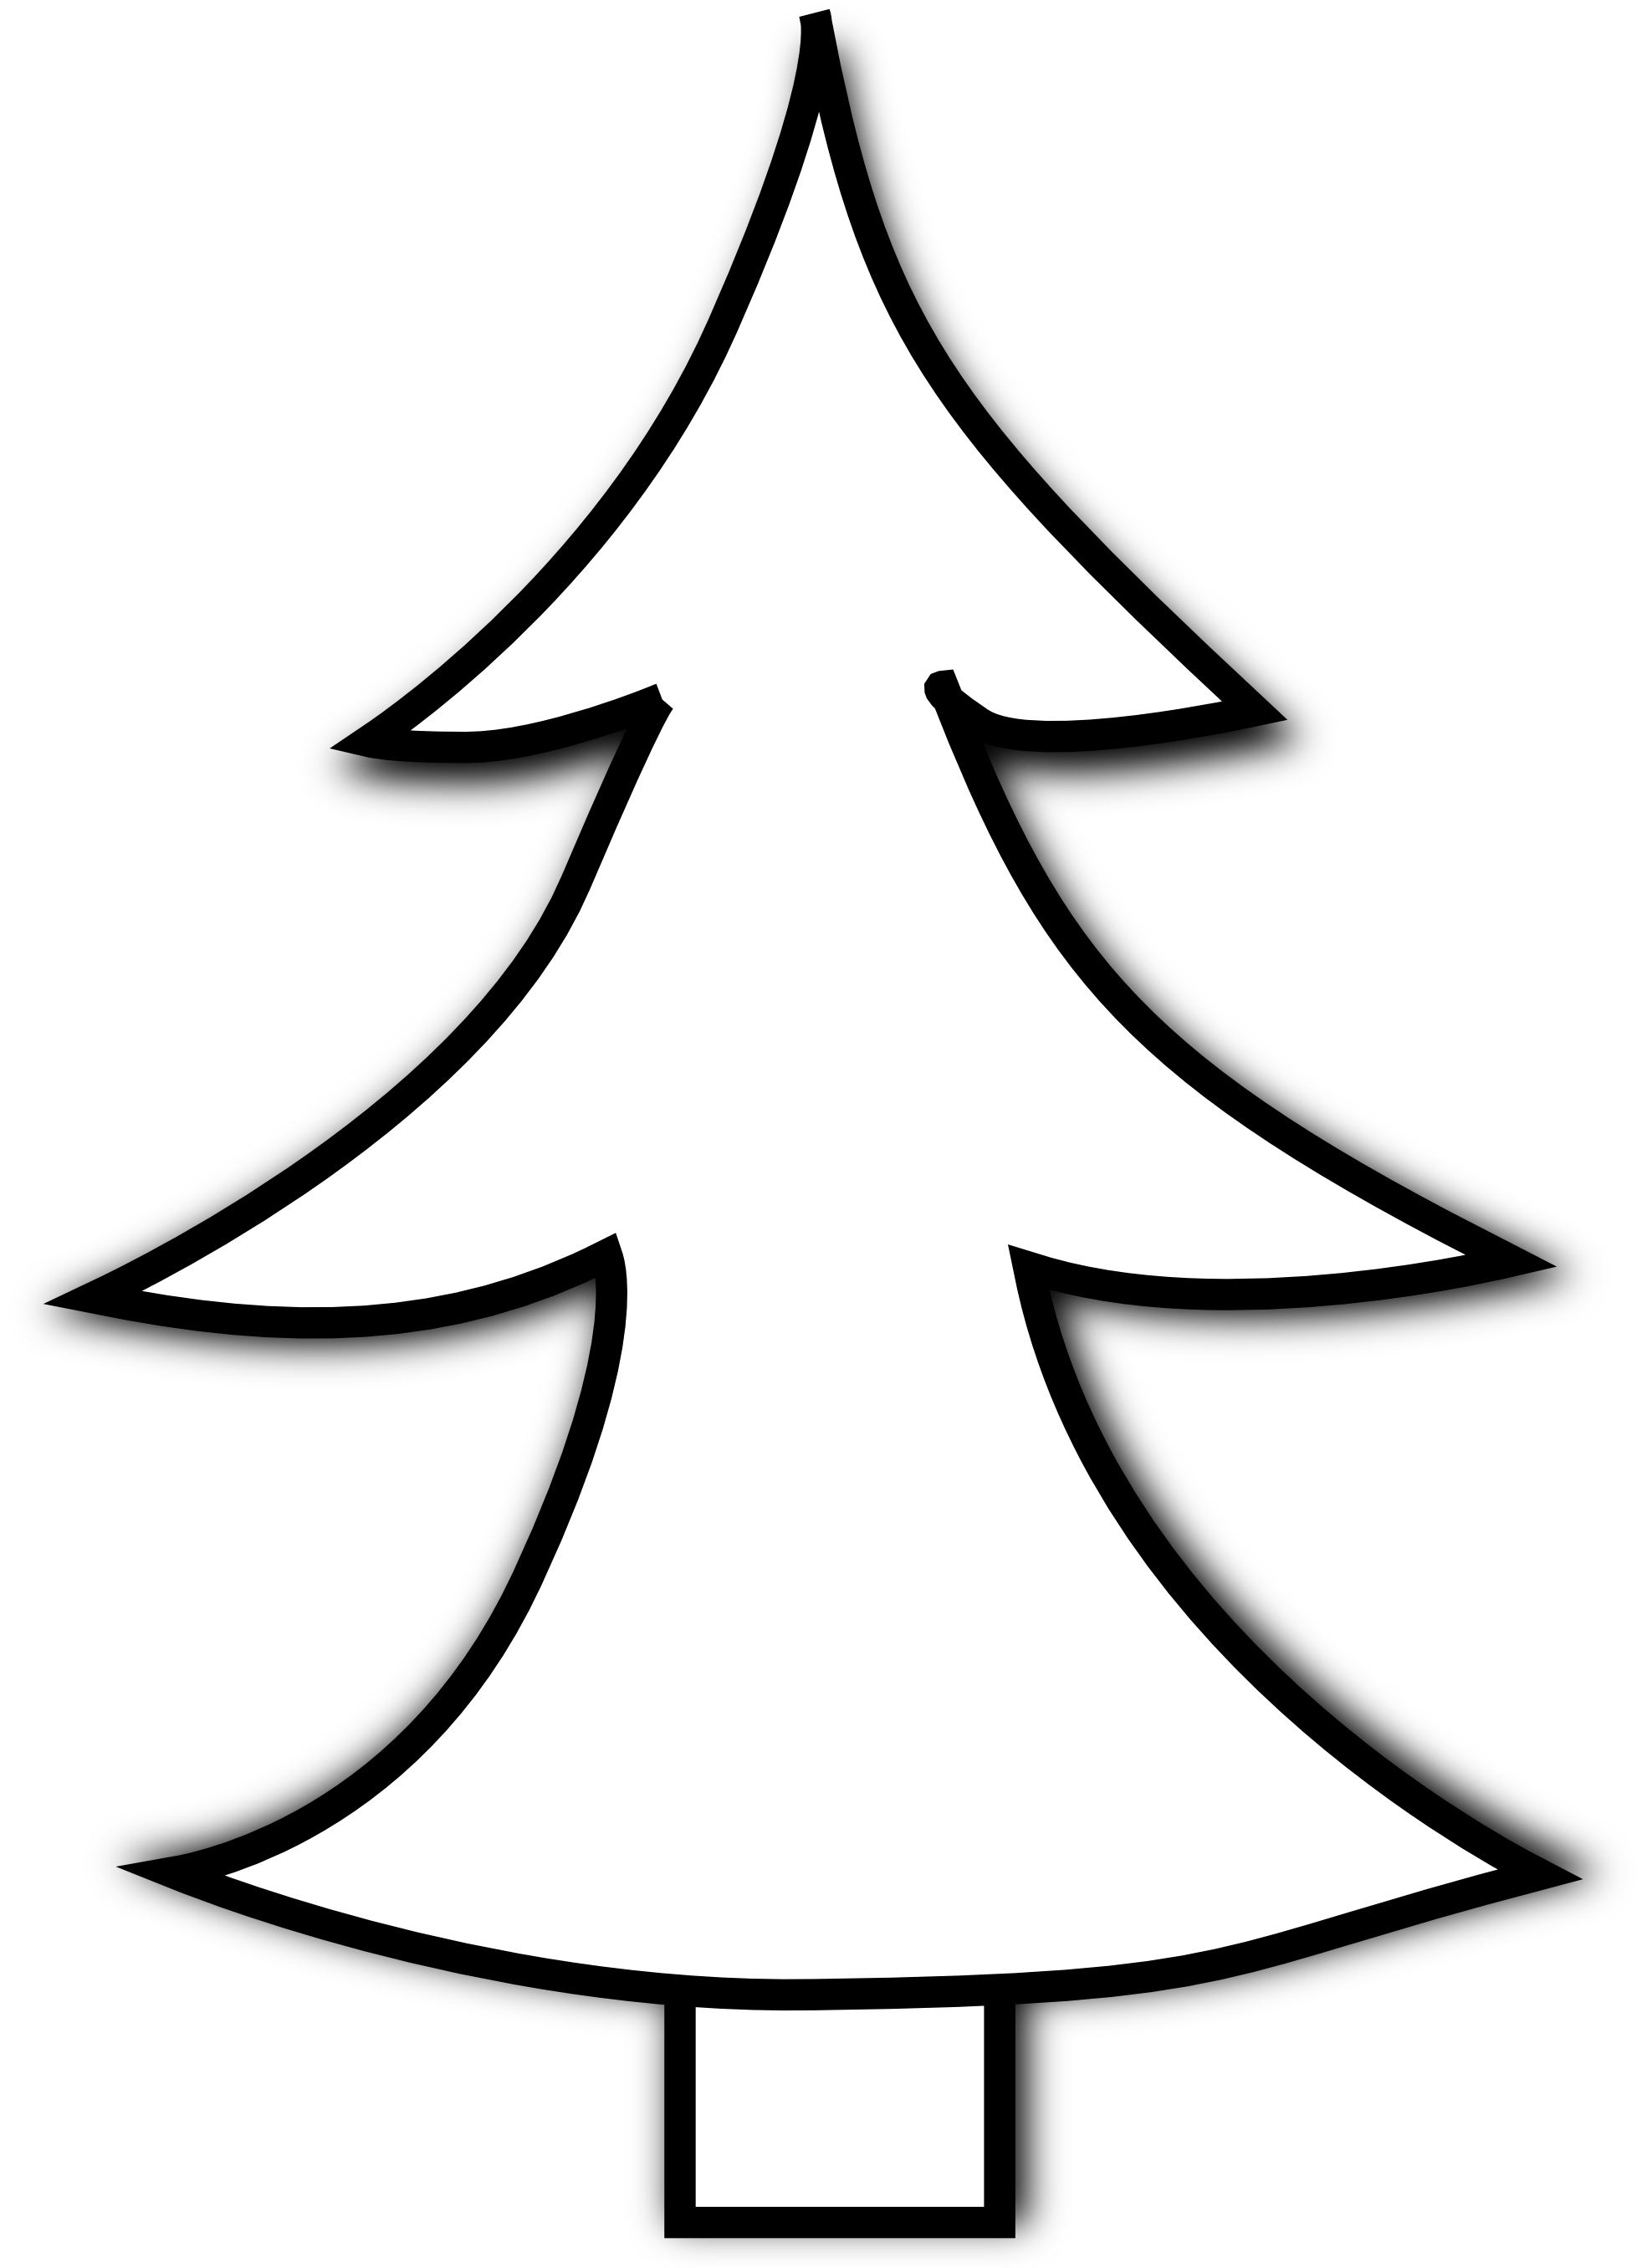 Pine Tree Clipart Black Clipart Panda Free Clipart Images Christmas Tree Clipart Black And White Tree Tree Clipart